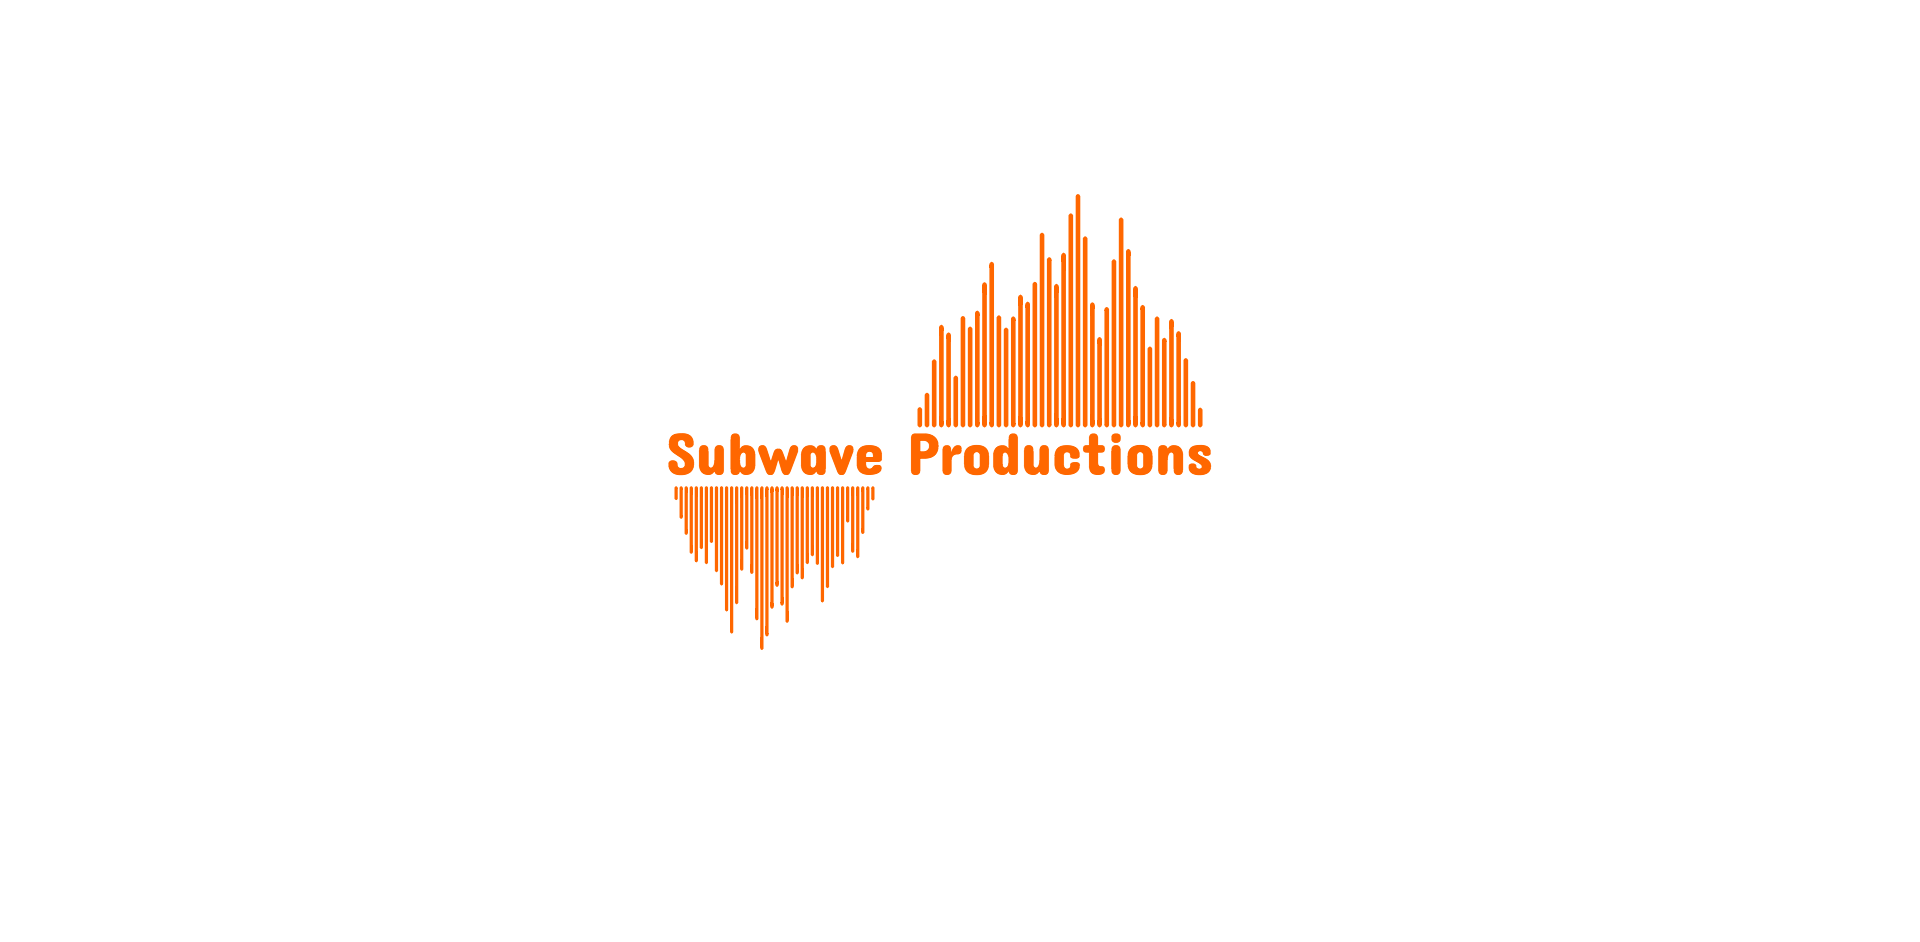 Subwave Productions